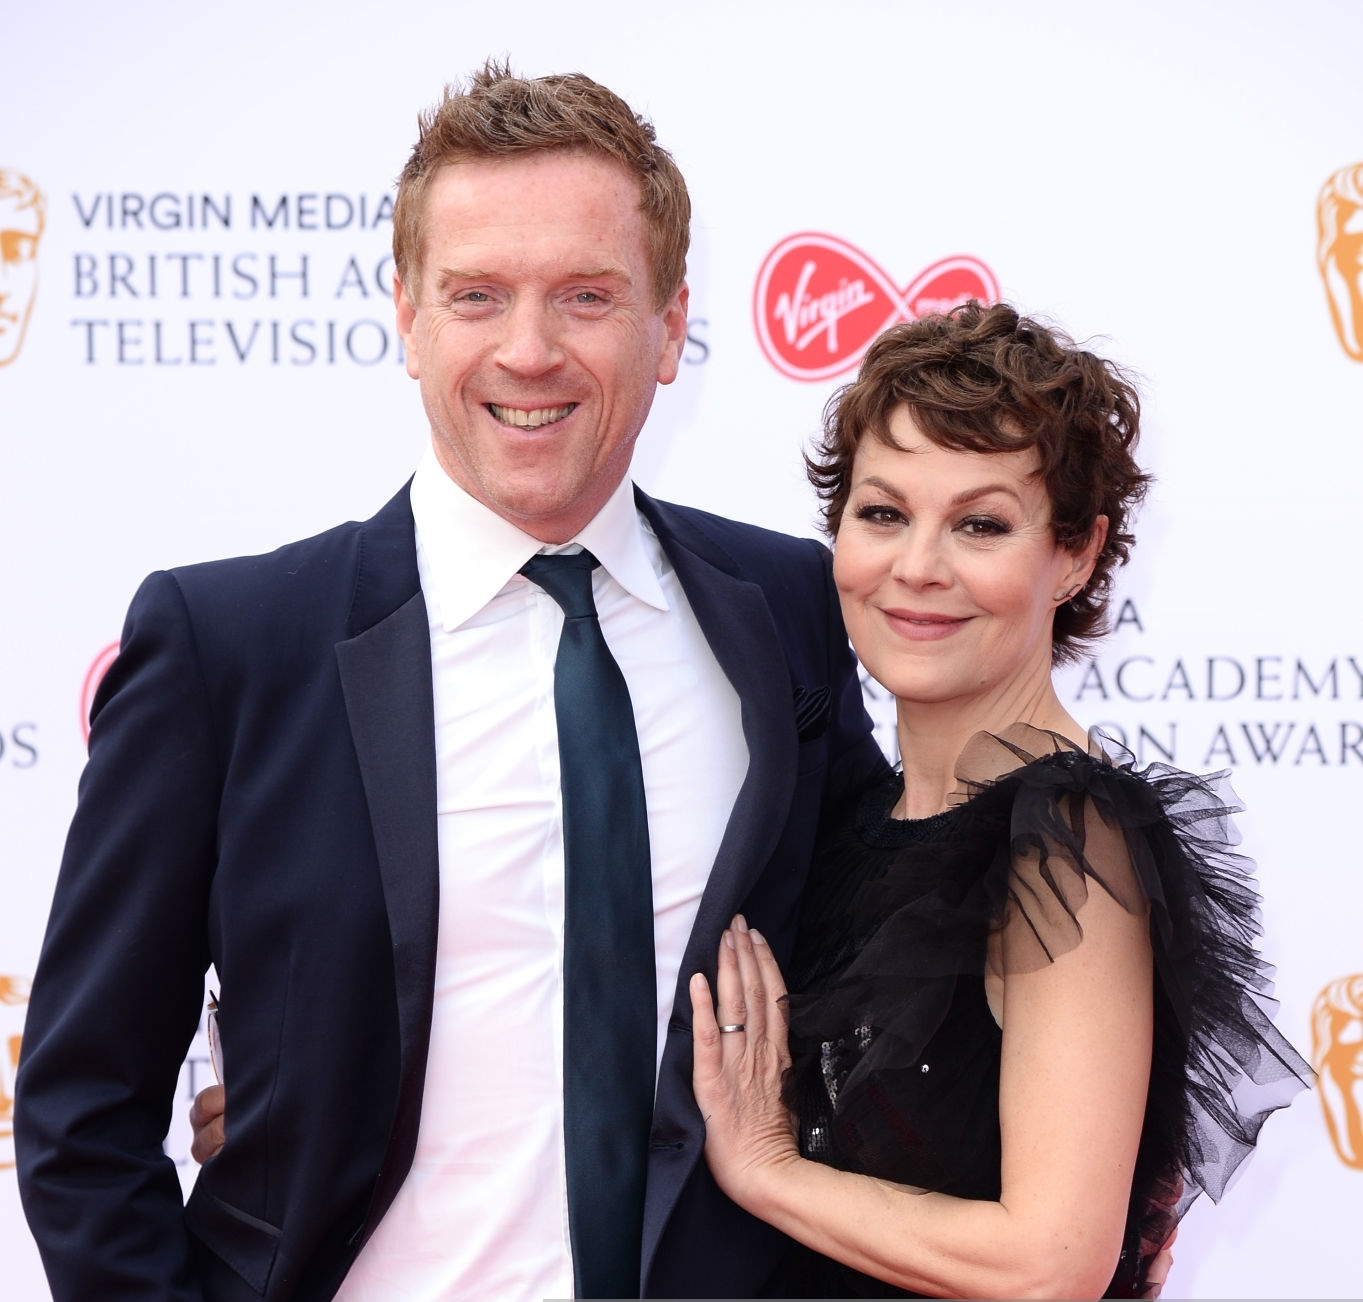 Damian and Helen Have Been Invited to Become Academy Members – July 1, 2019  – Damian Lewis